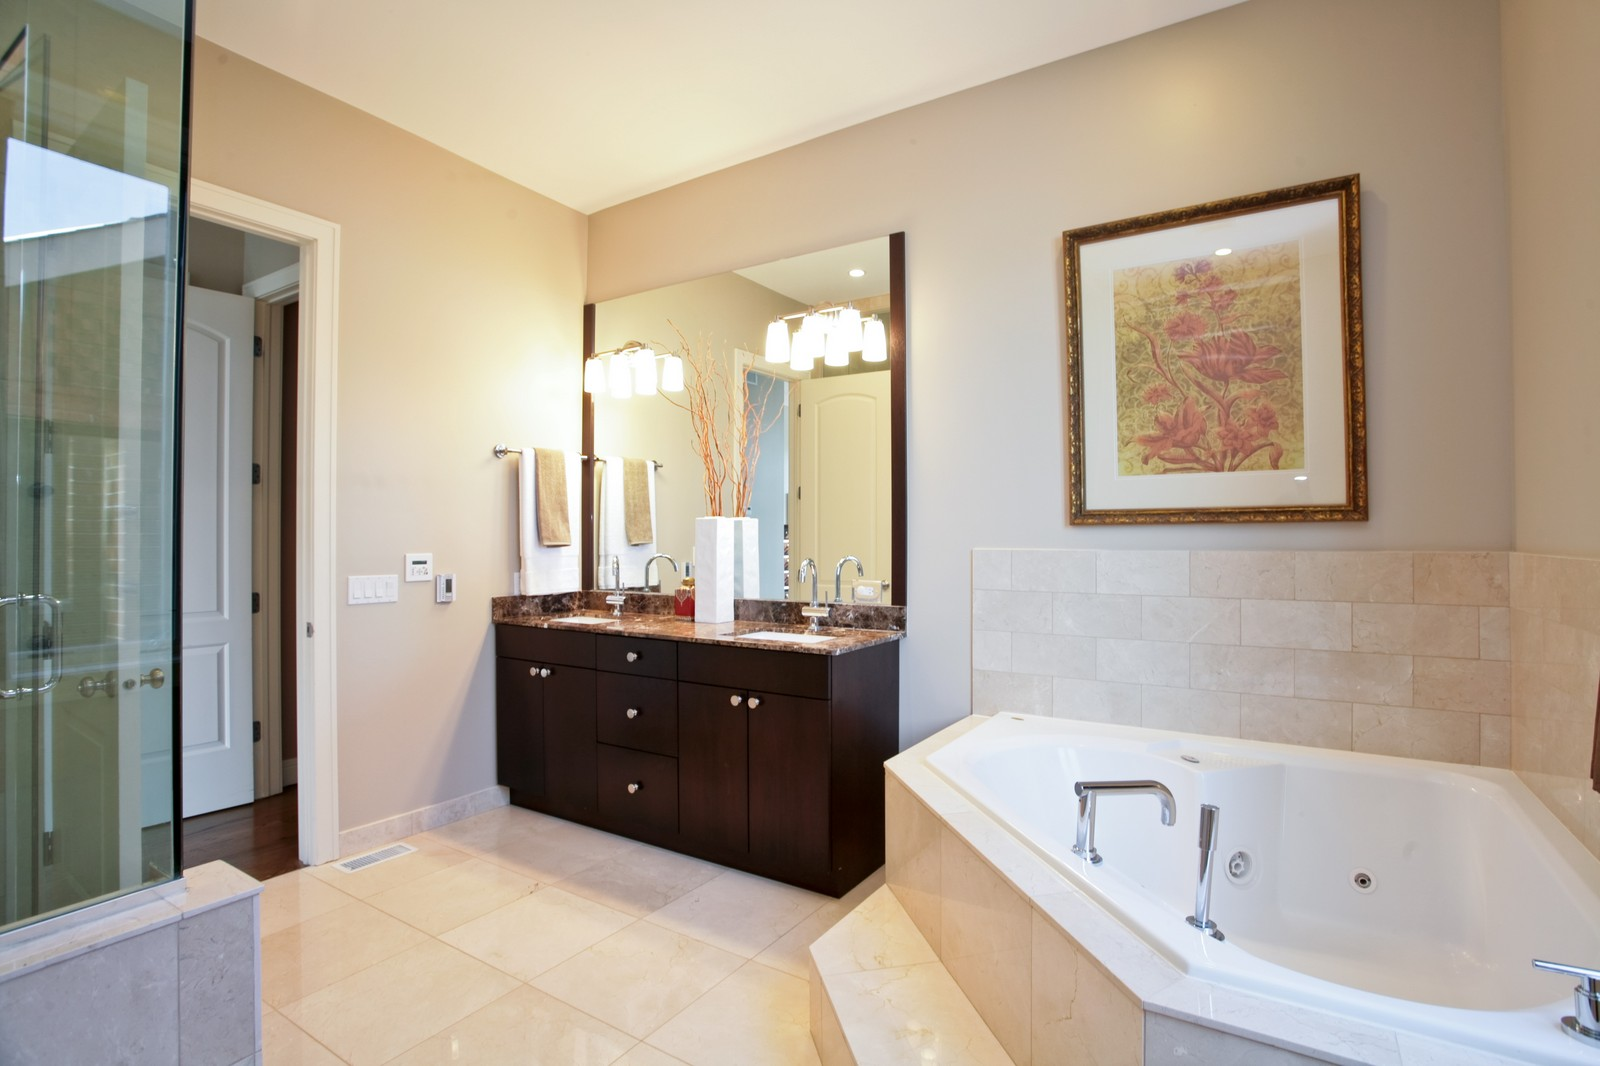 Real Estate Photography - 2340 W Ohio, Chicago, IL, 60612 - Master Bathroom